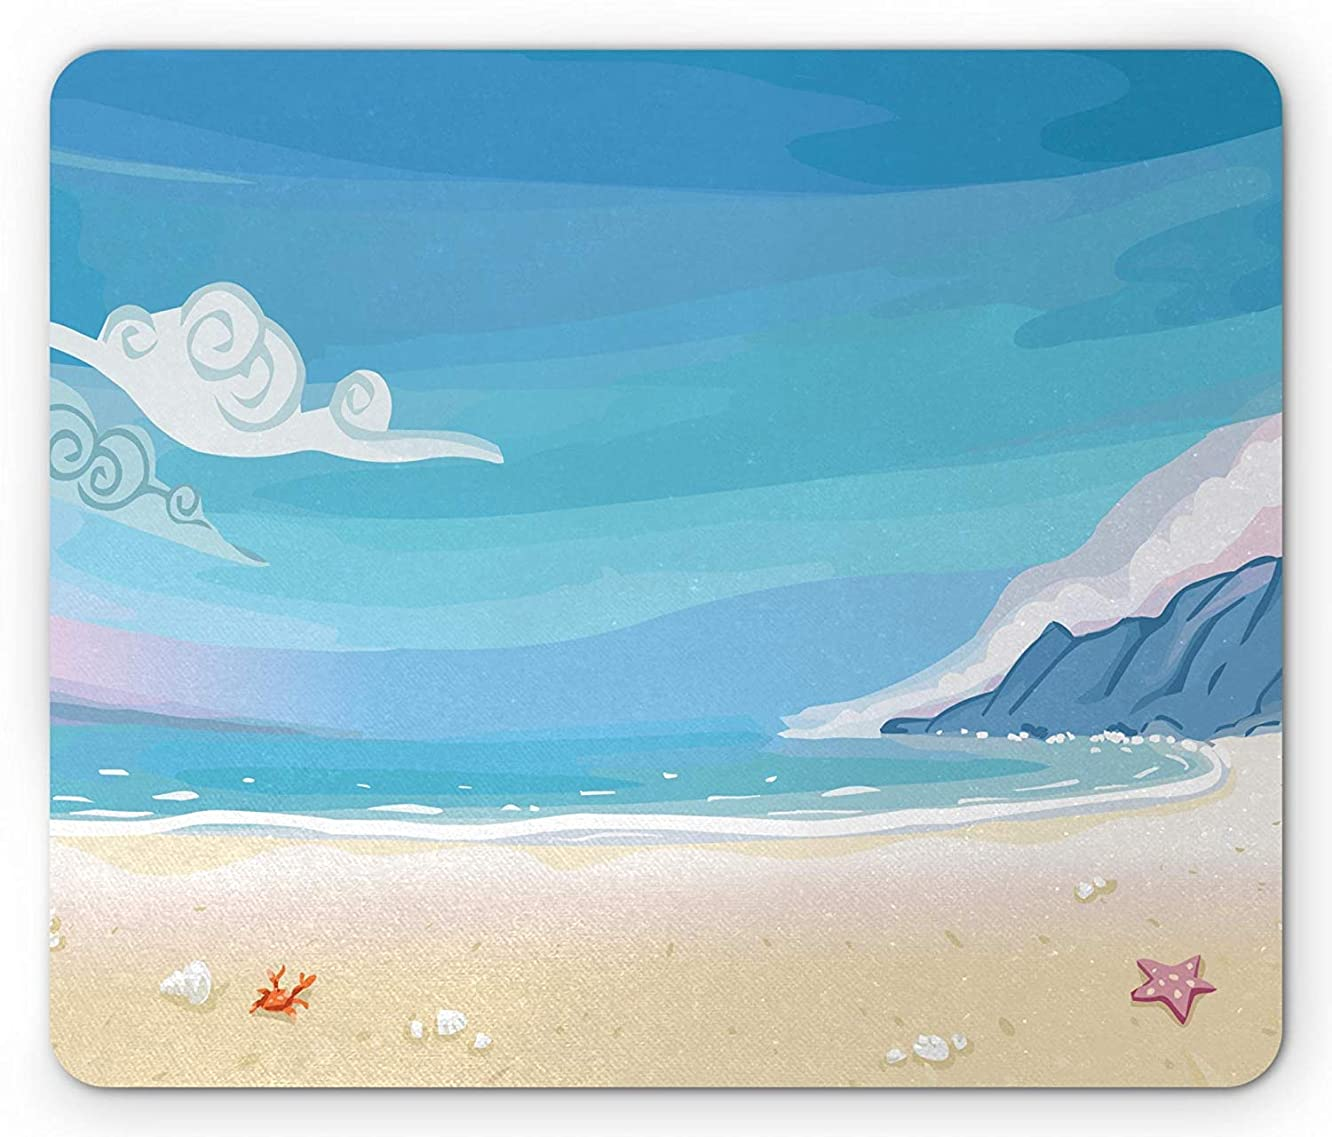 Neverland Mouse Pad, Paradise Beach by The Ocean Coastal Charm with Sea Shells and Starfish Image, Standard Size Rectangle Non-Slip Rubber Mousepad, Sky Blue Ivory